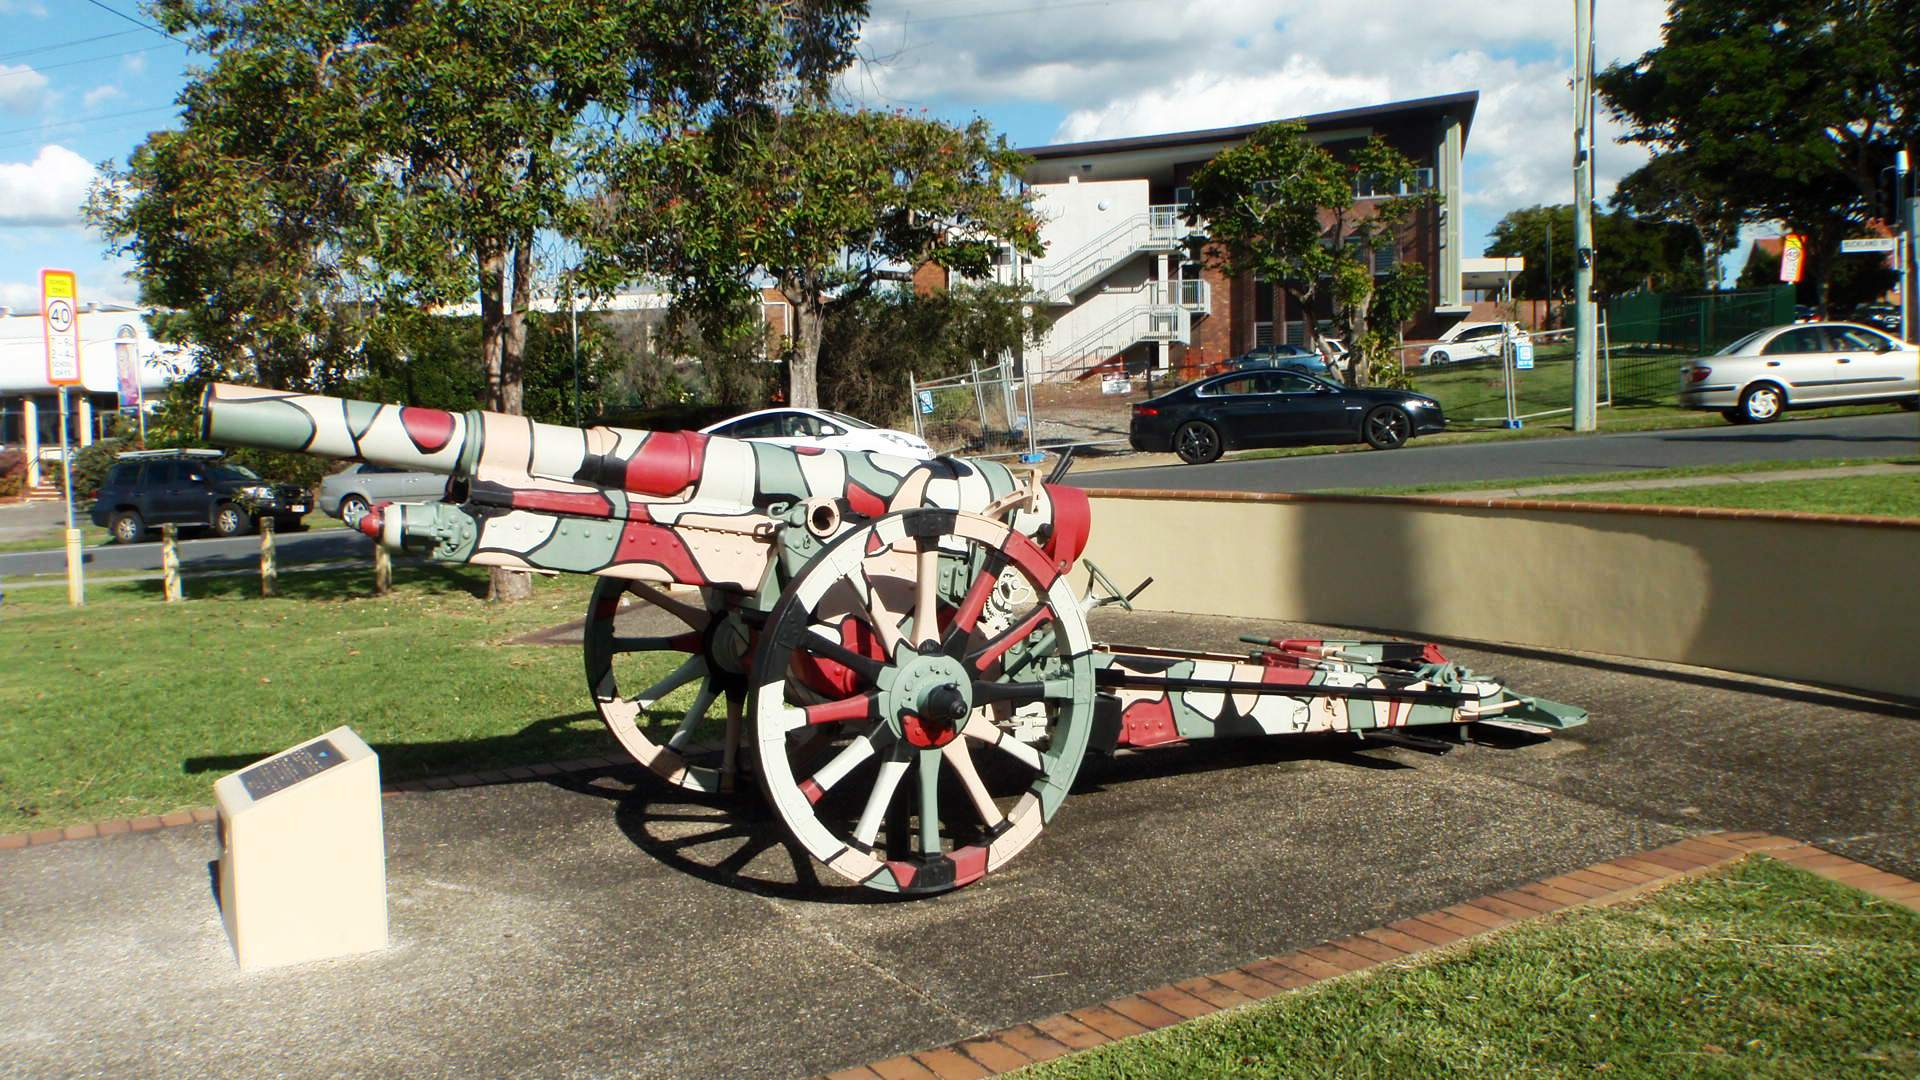 German 50 Mm Anti Tank Gun: File:German Krupp 108mm Gun, War Memorial Nundah QLD.JPG